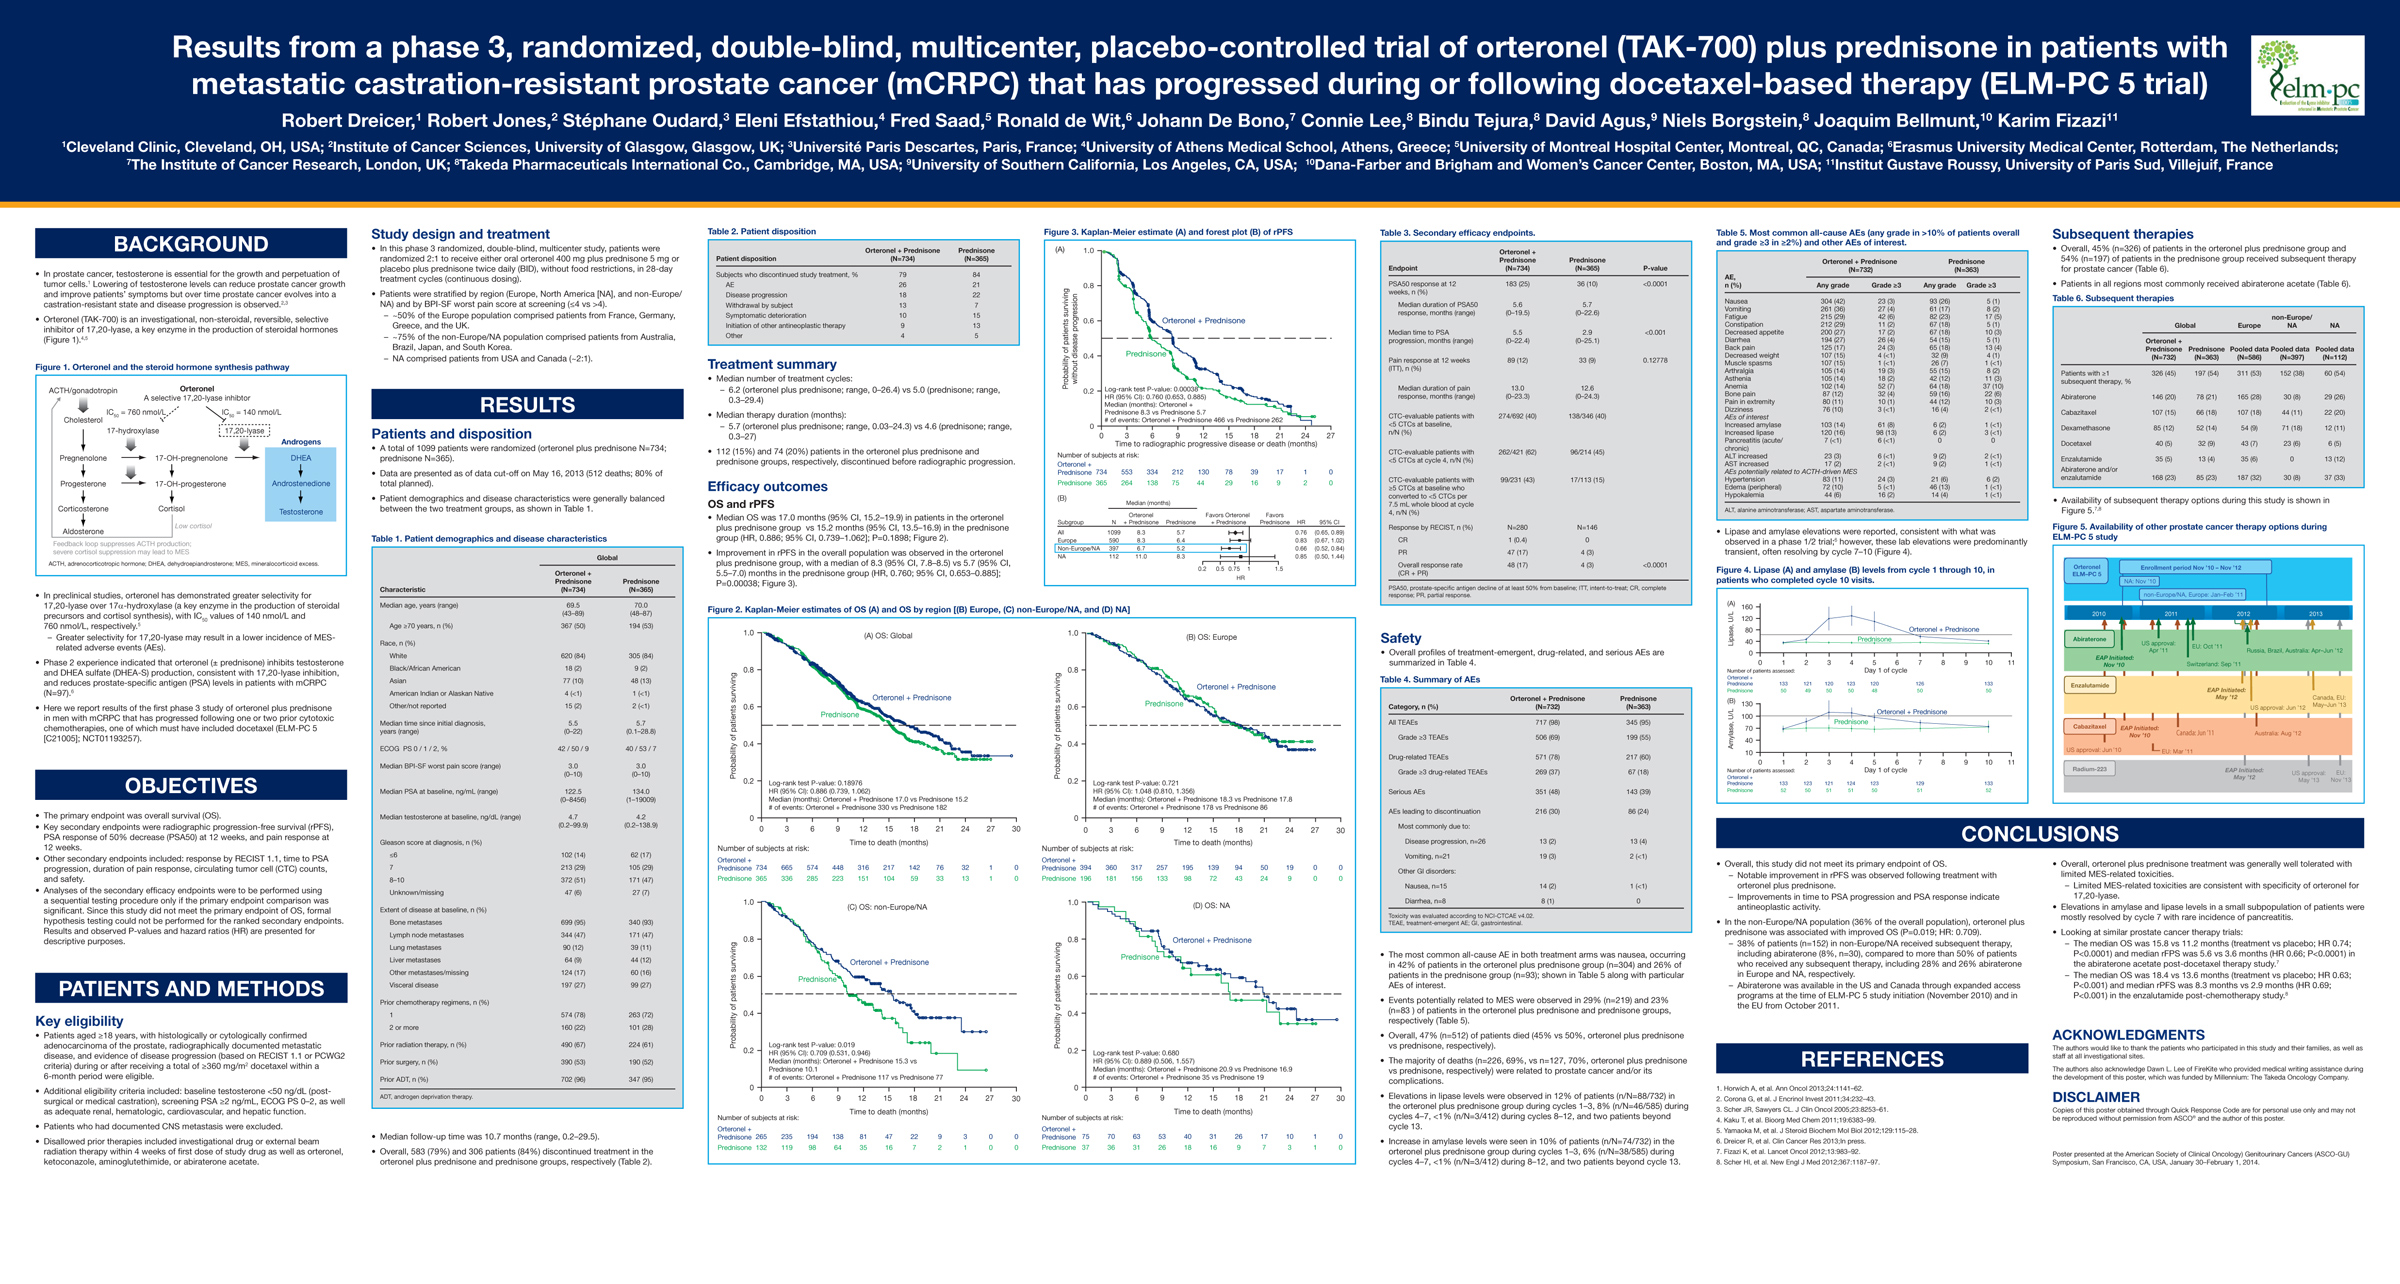 GU Cancers Symposium 2014 - Poster: Results from a phase 3